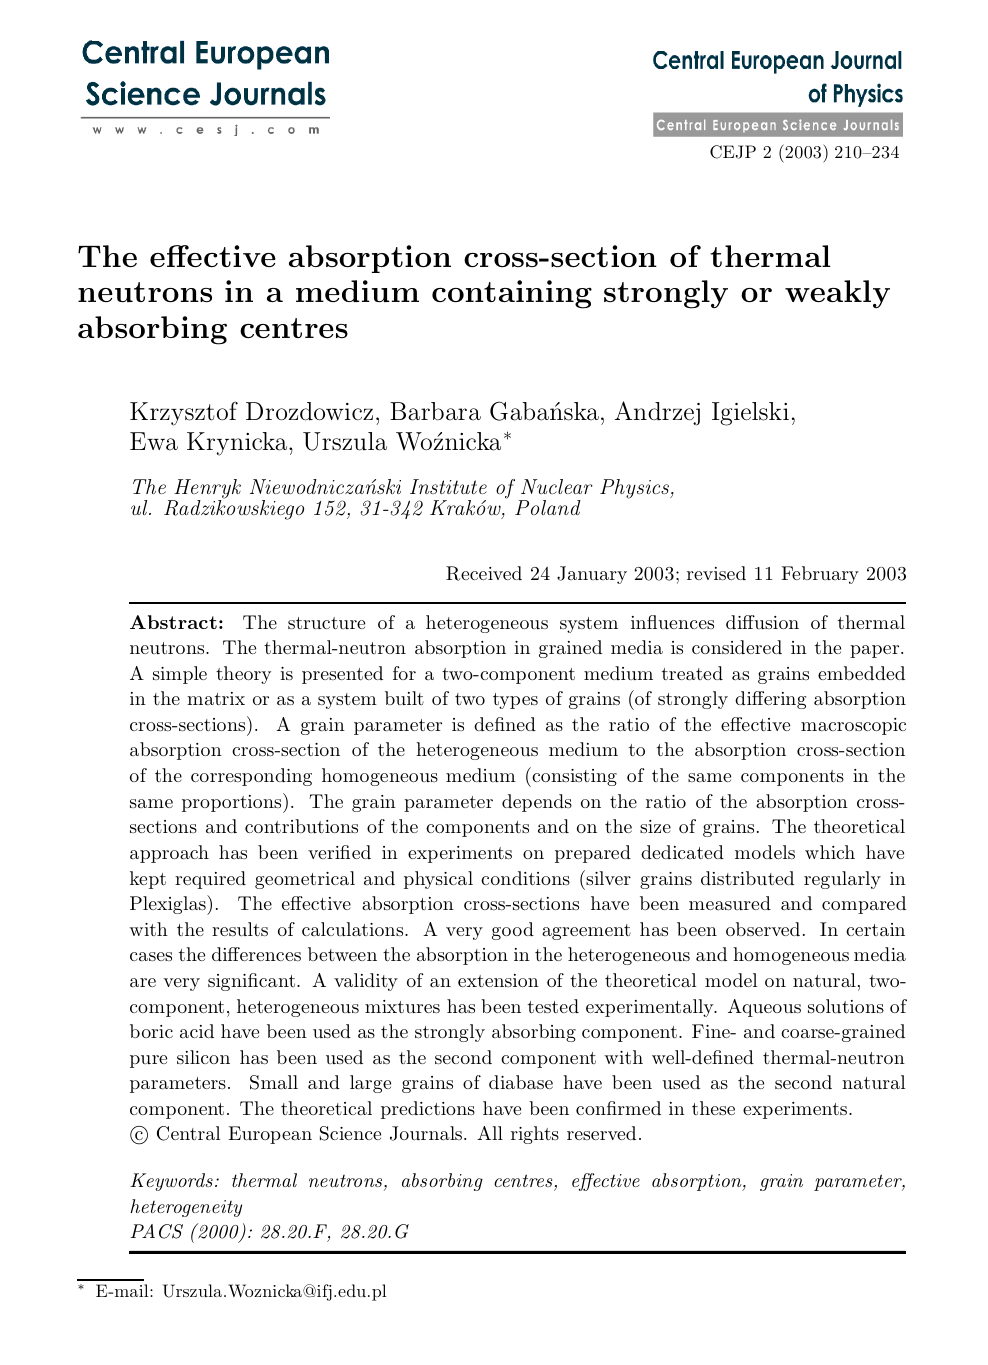 The effective absorption cross-section of thermal neutrons in a